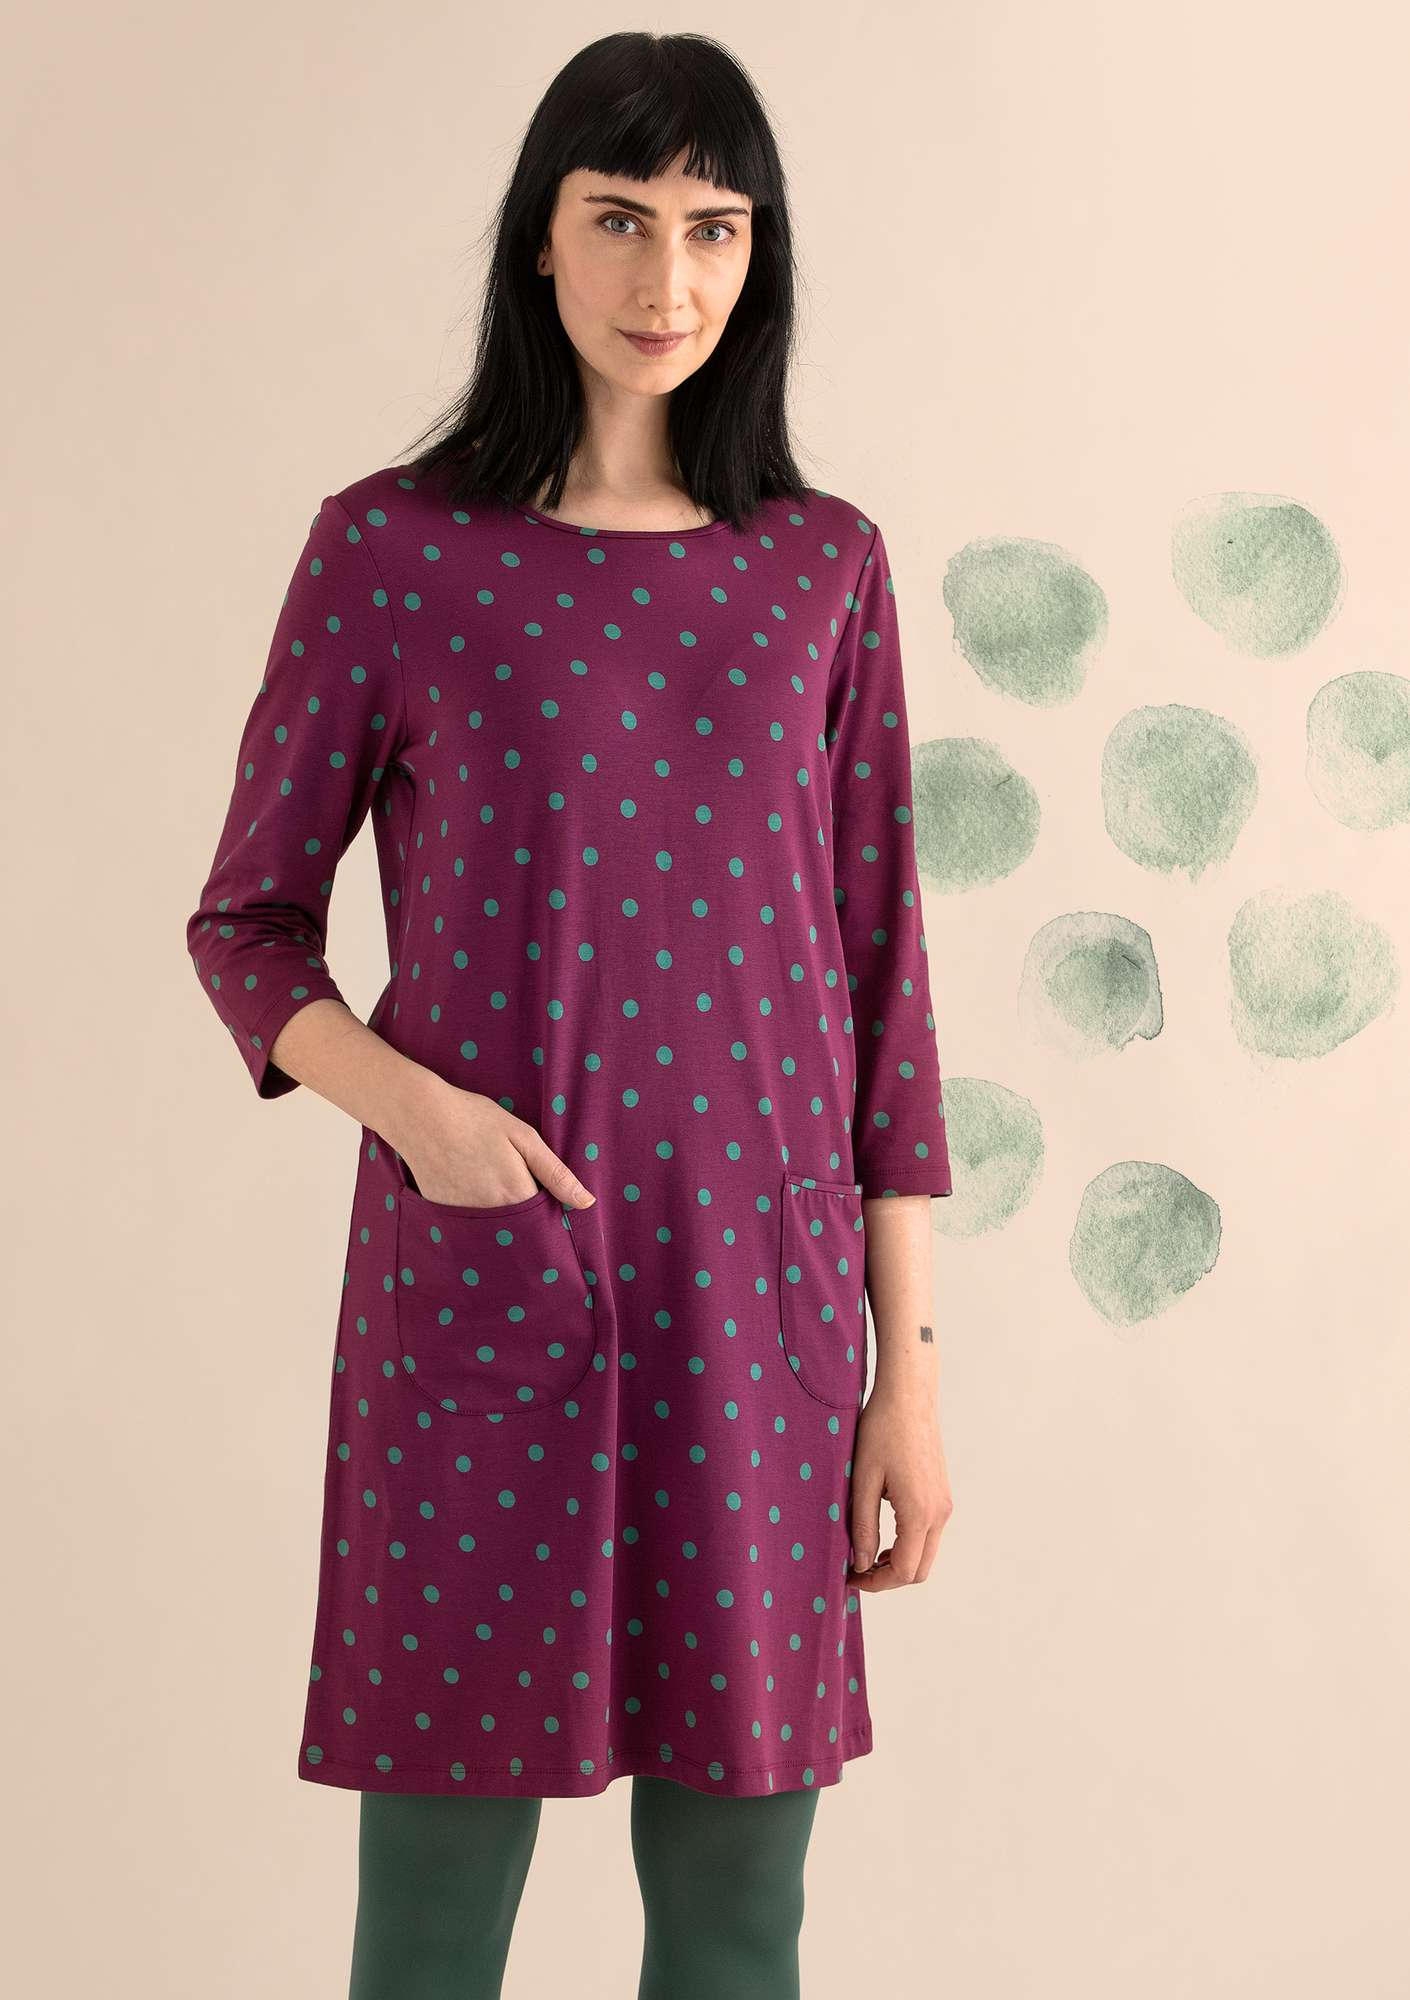 Mekko DOT grape/patterned